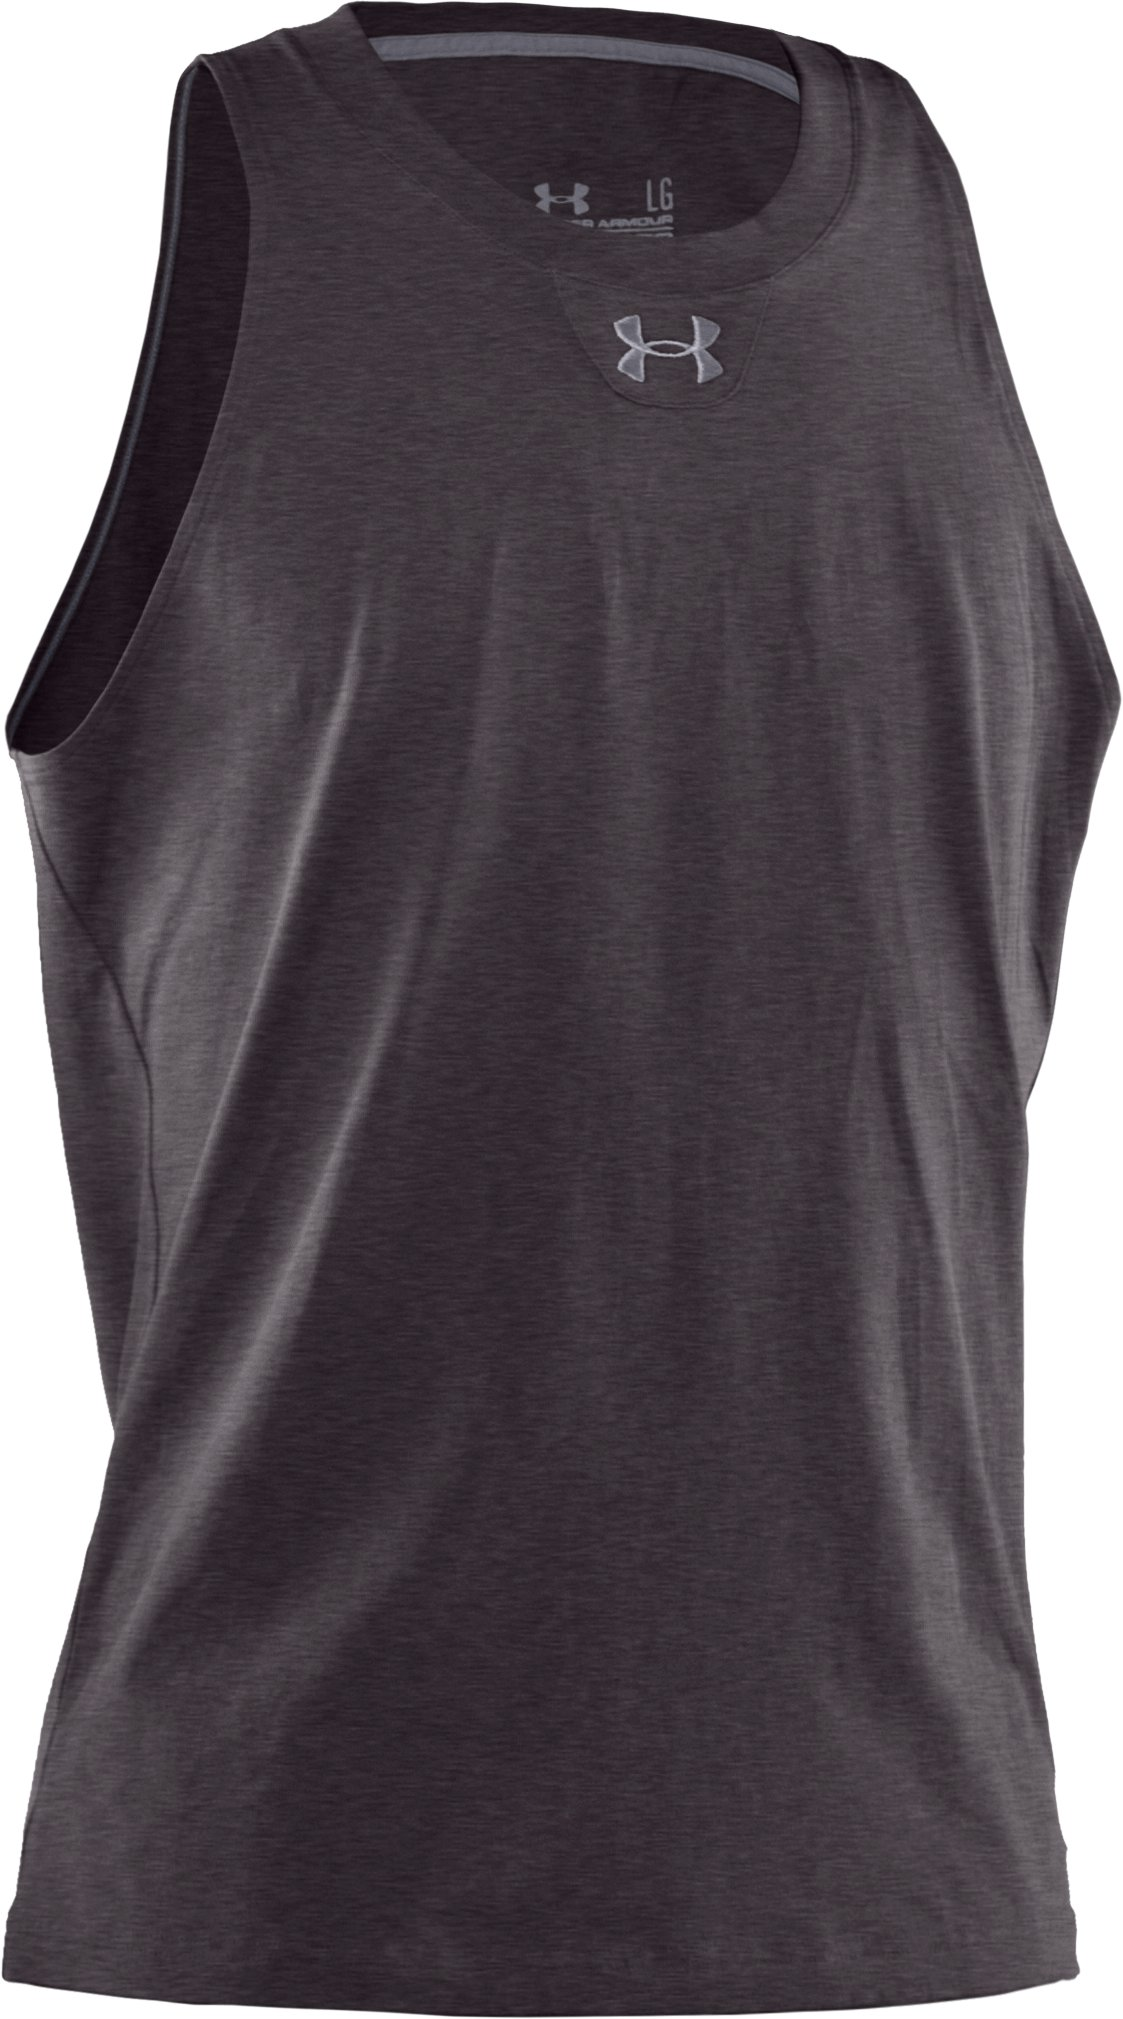 Men's Charged Cotton® Tank, Carbon Heather, undefined